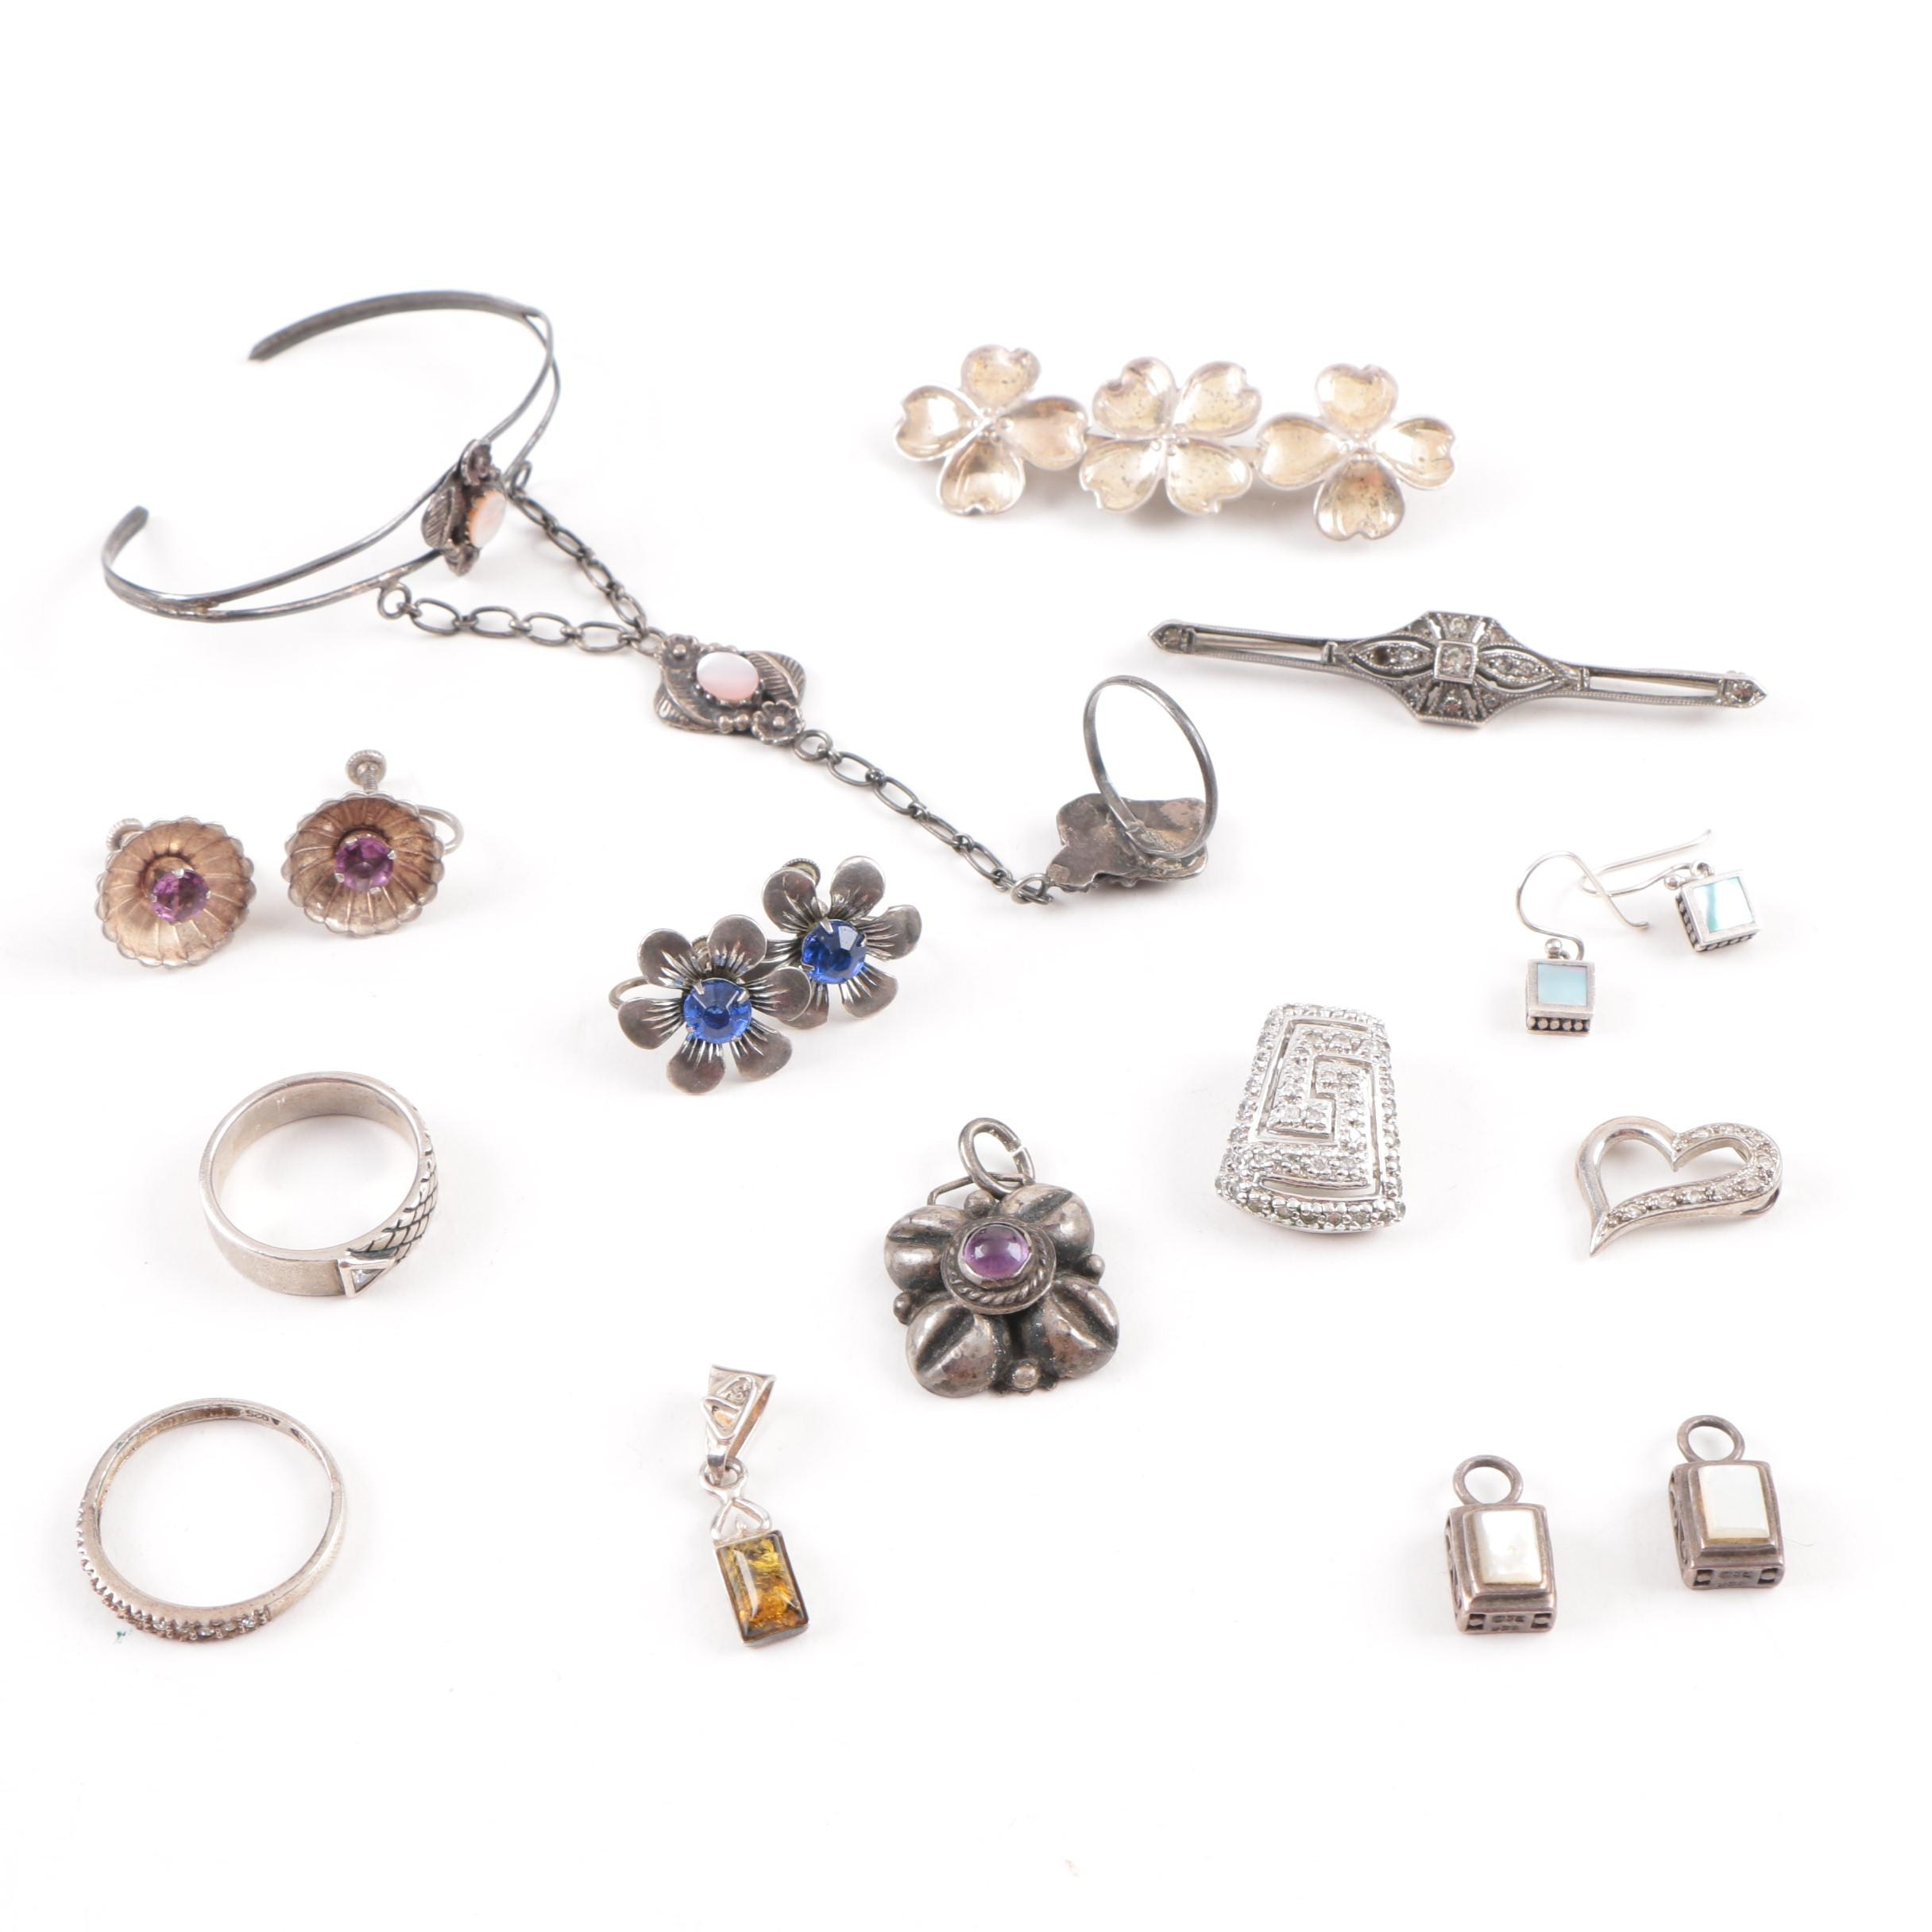 Assortment of Sterling Silver Gemstone Jewelry